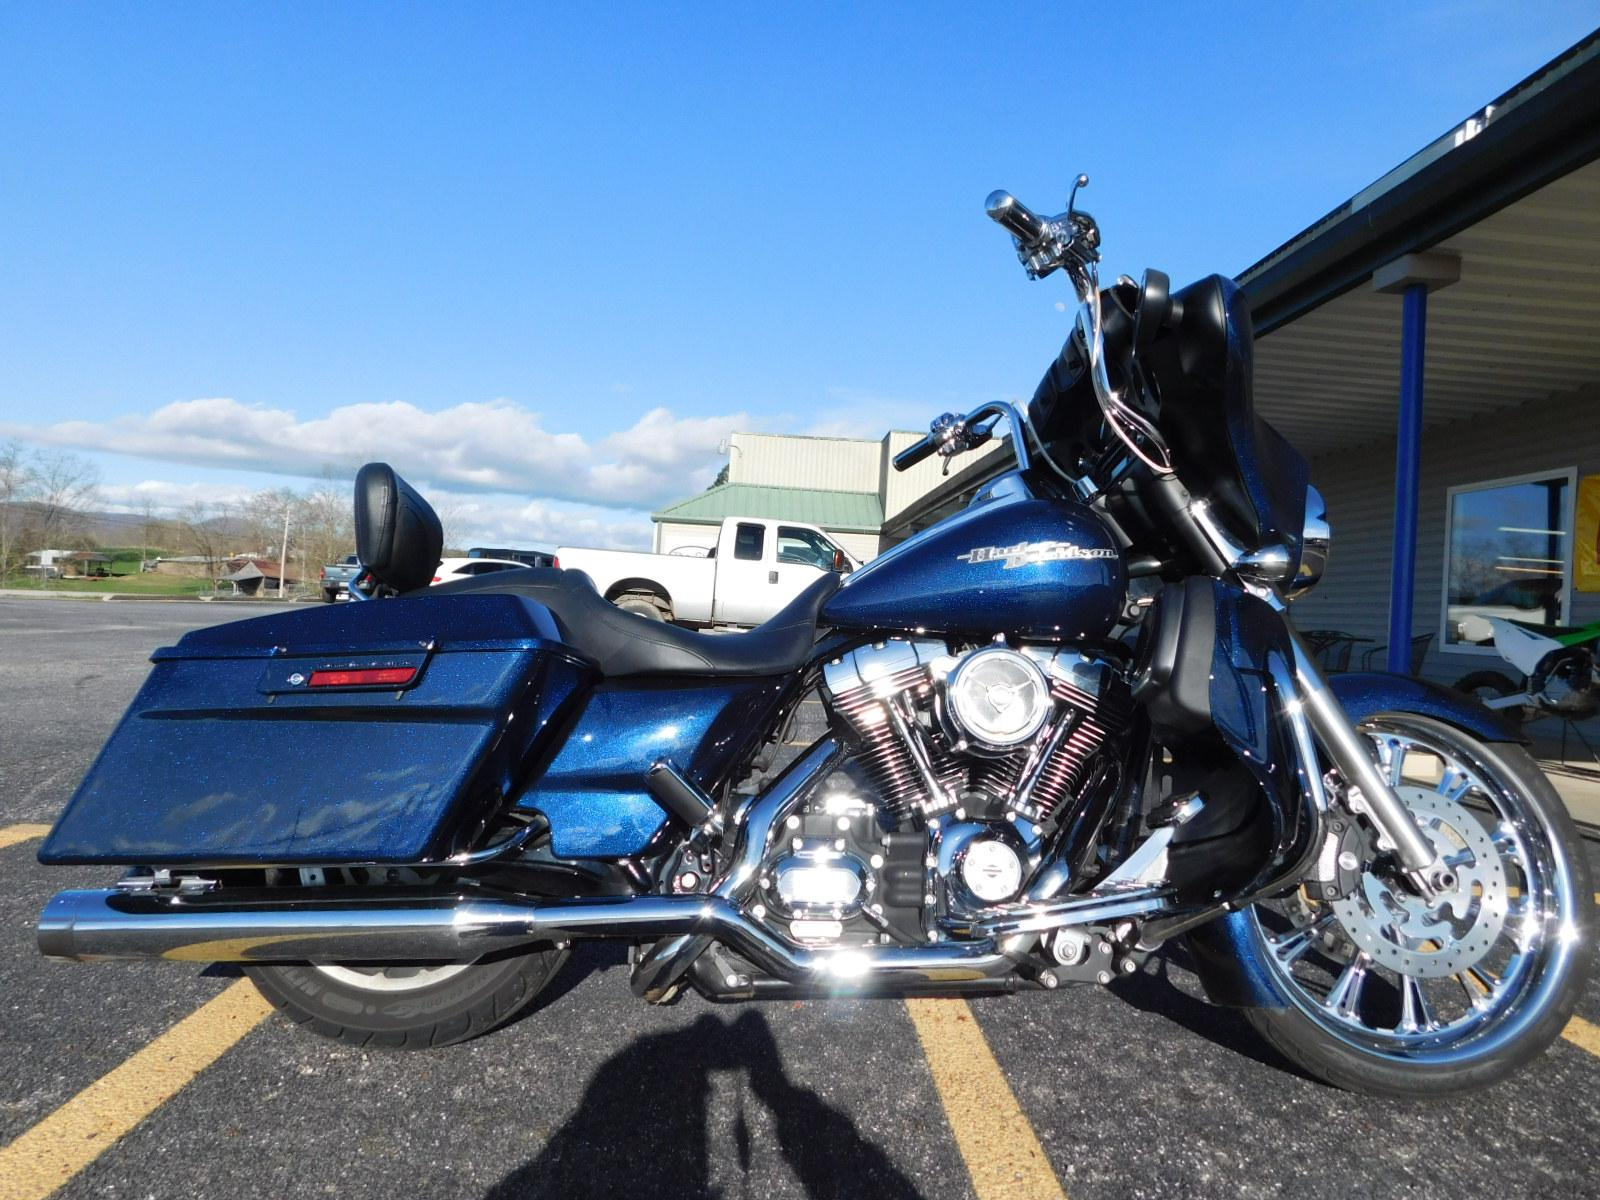 2012 harley davidson flhx street glide custom color for sale in blairsville ga union powersports 706 745 9671